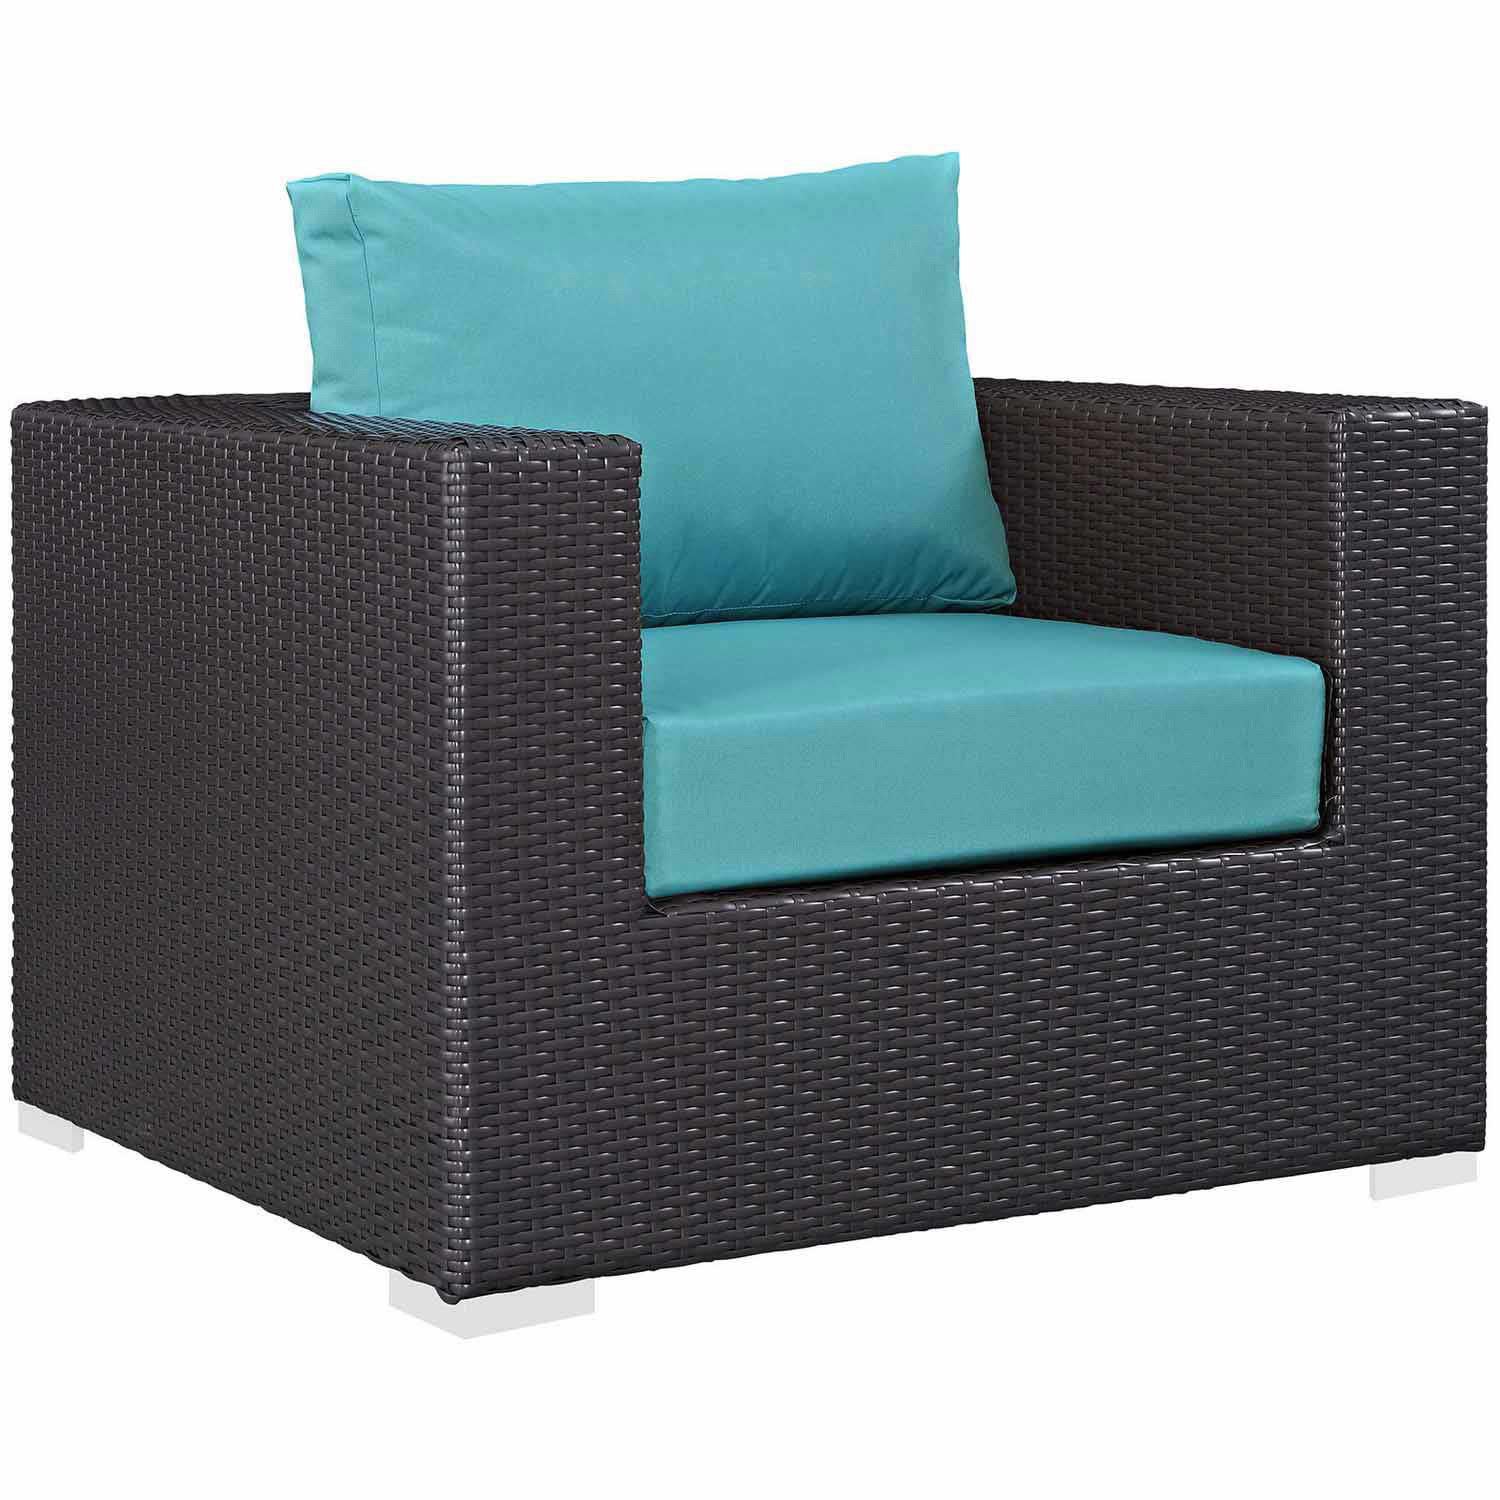 Modway Convene Outdoor Patio Arm Chair - Espresso Turquoise